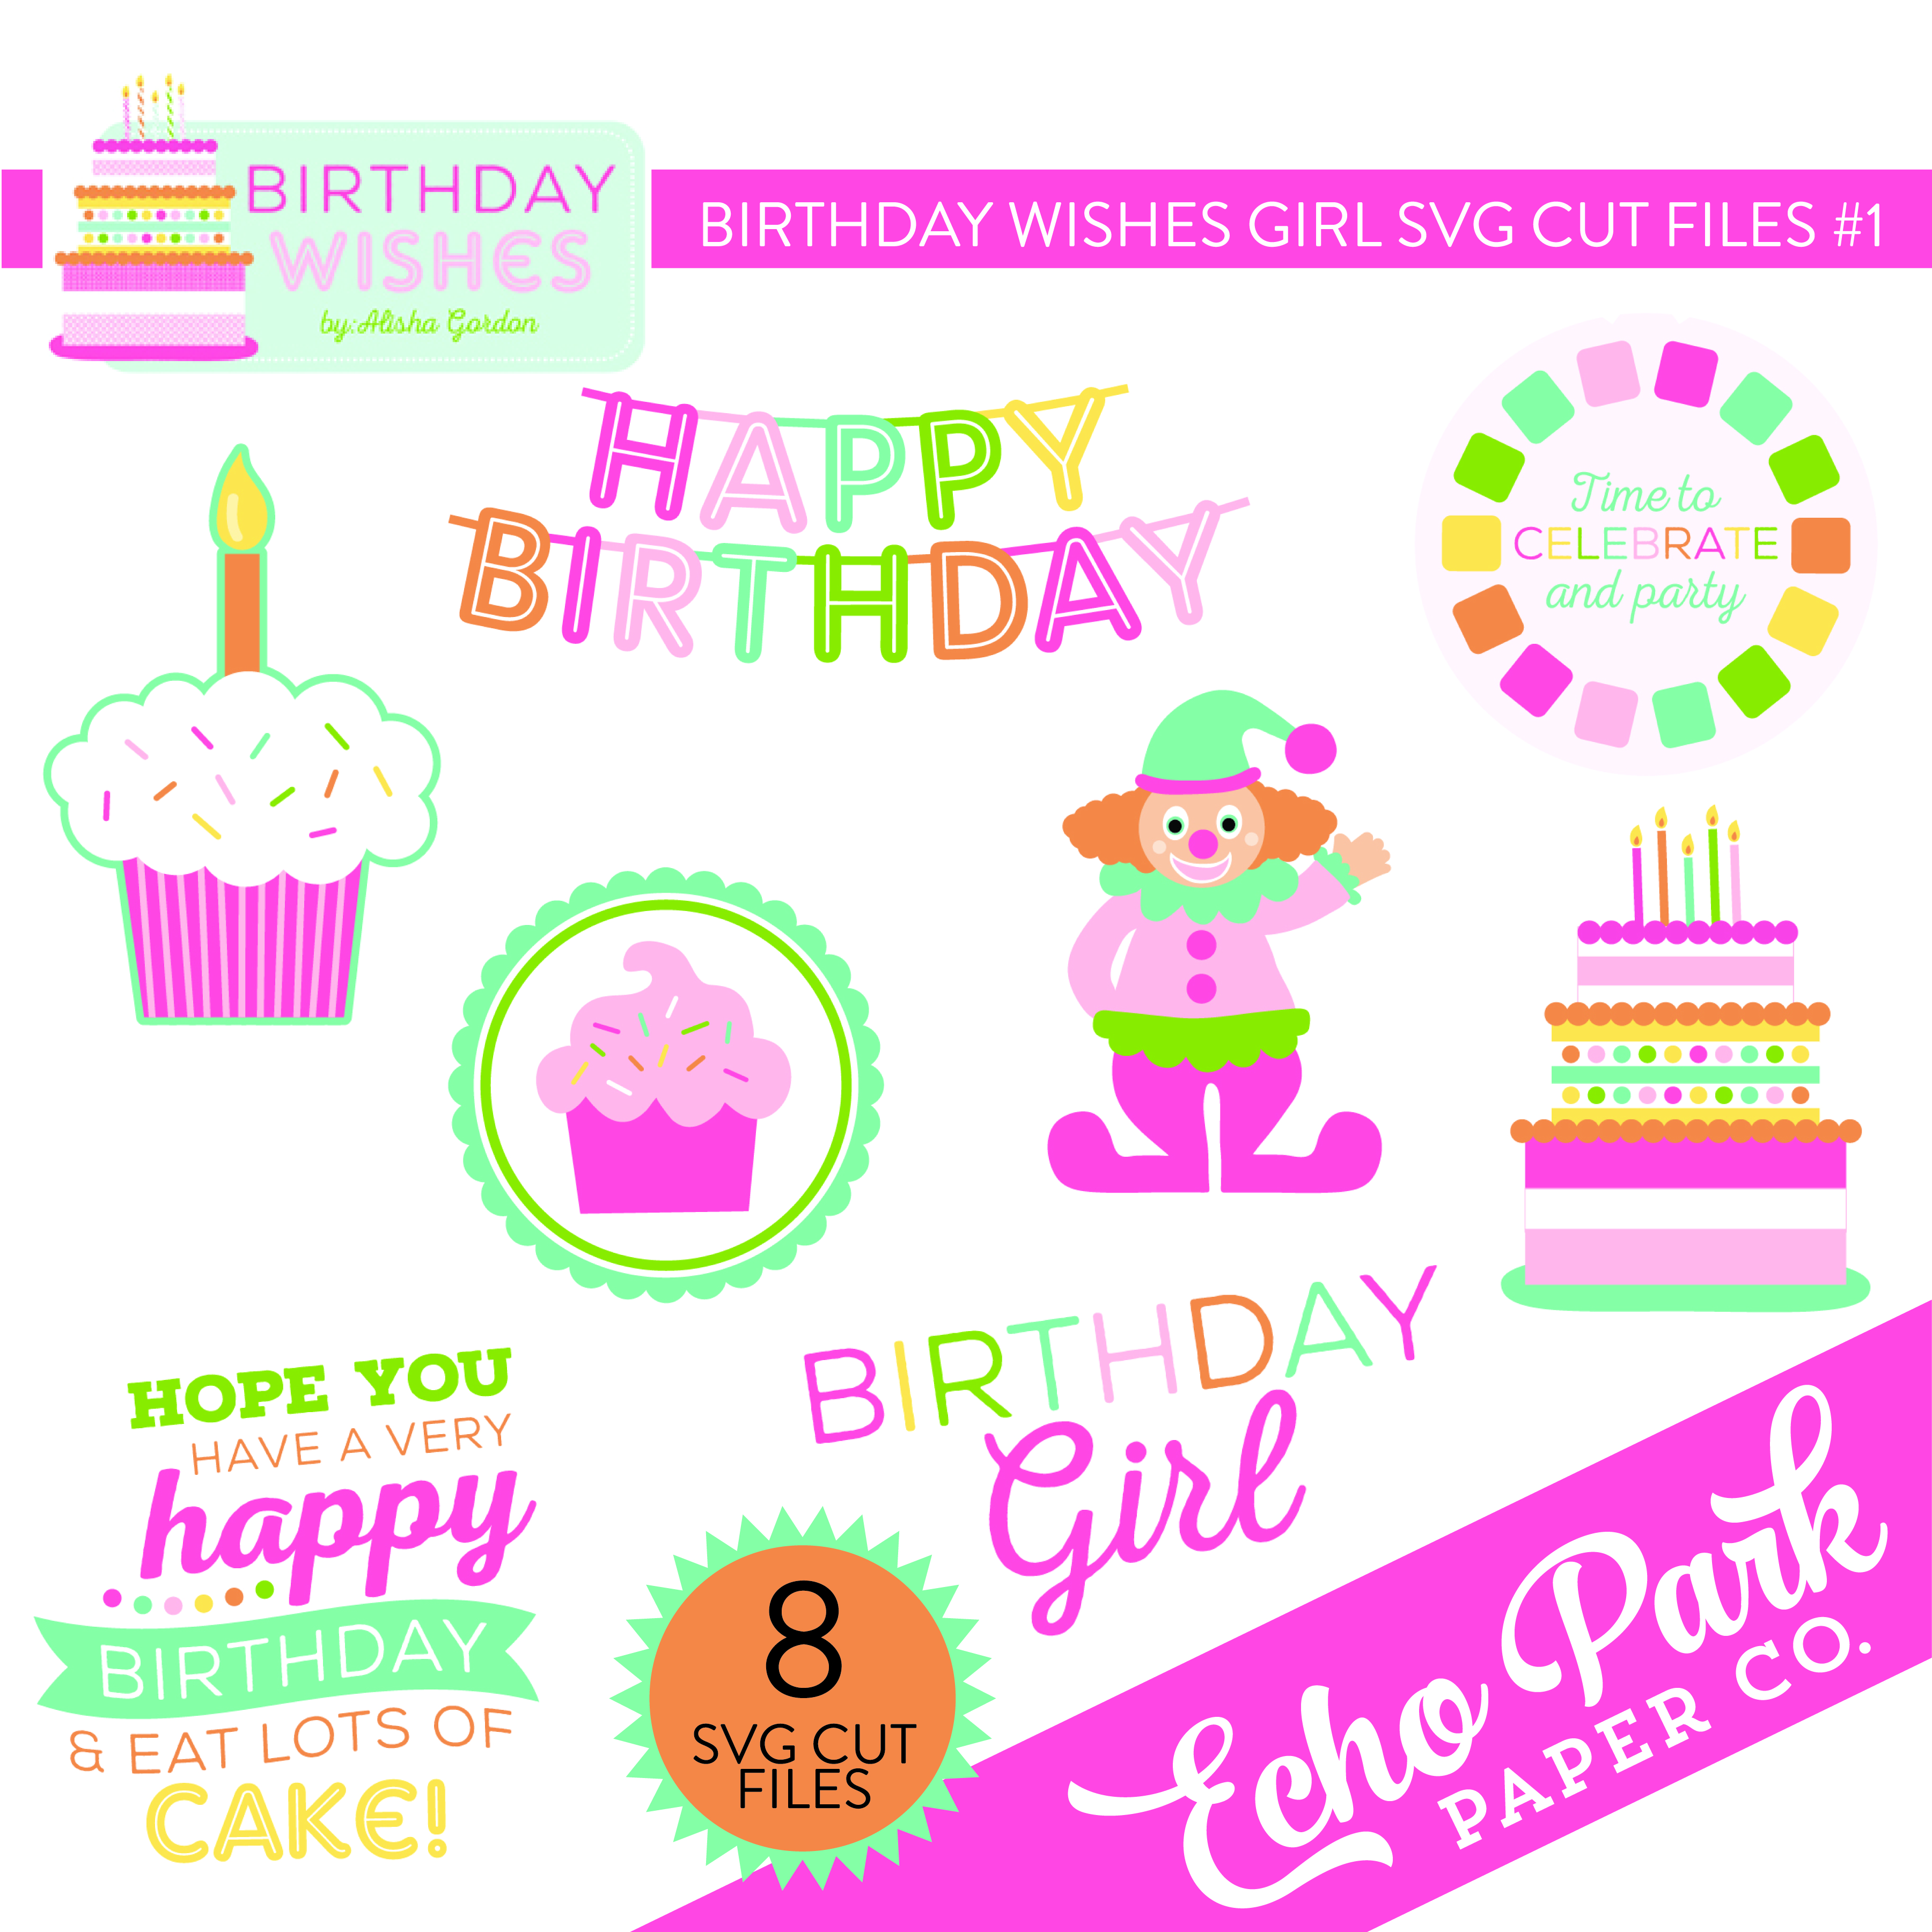 Birthday Wishes Girl SVG Cut File #1